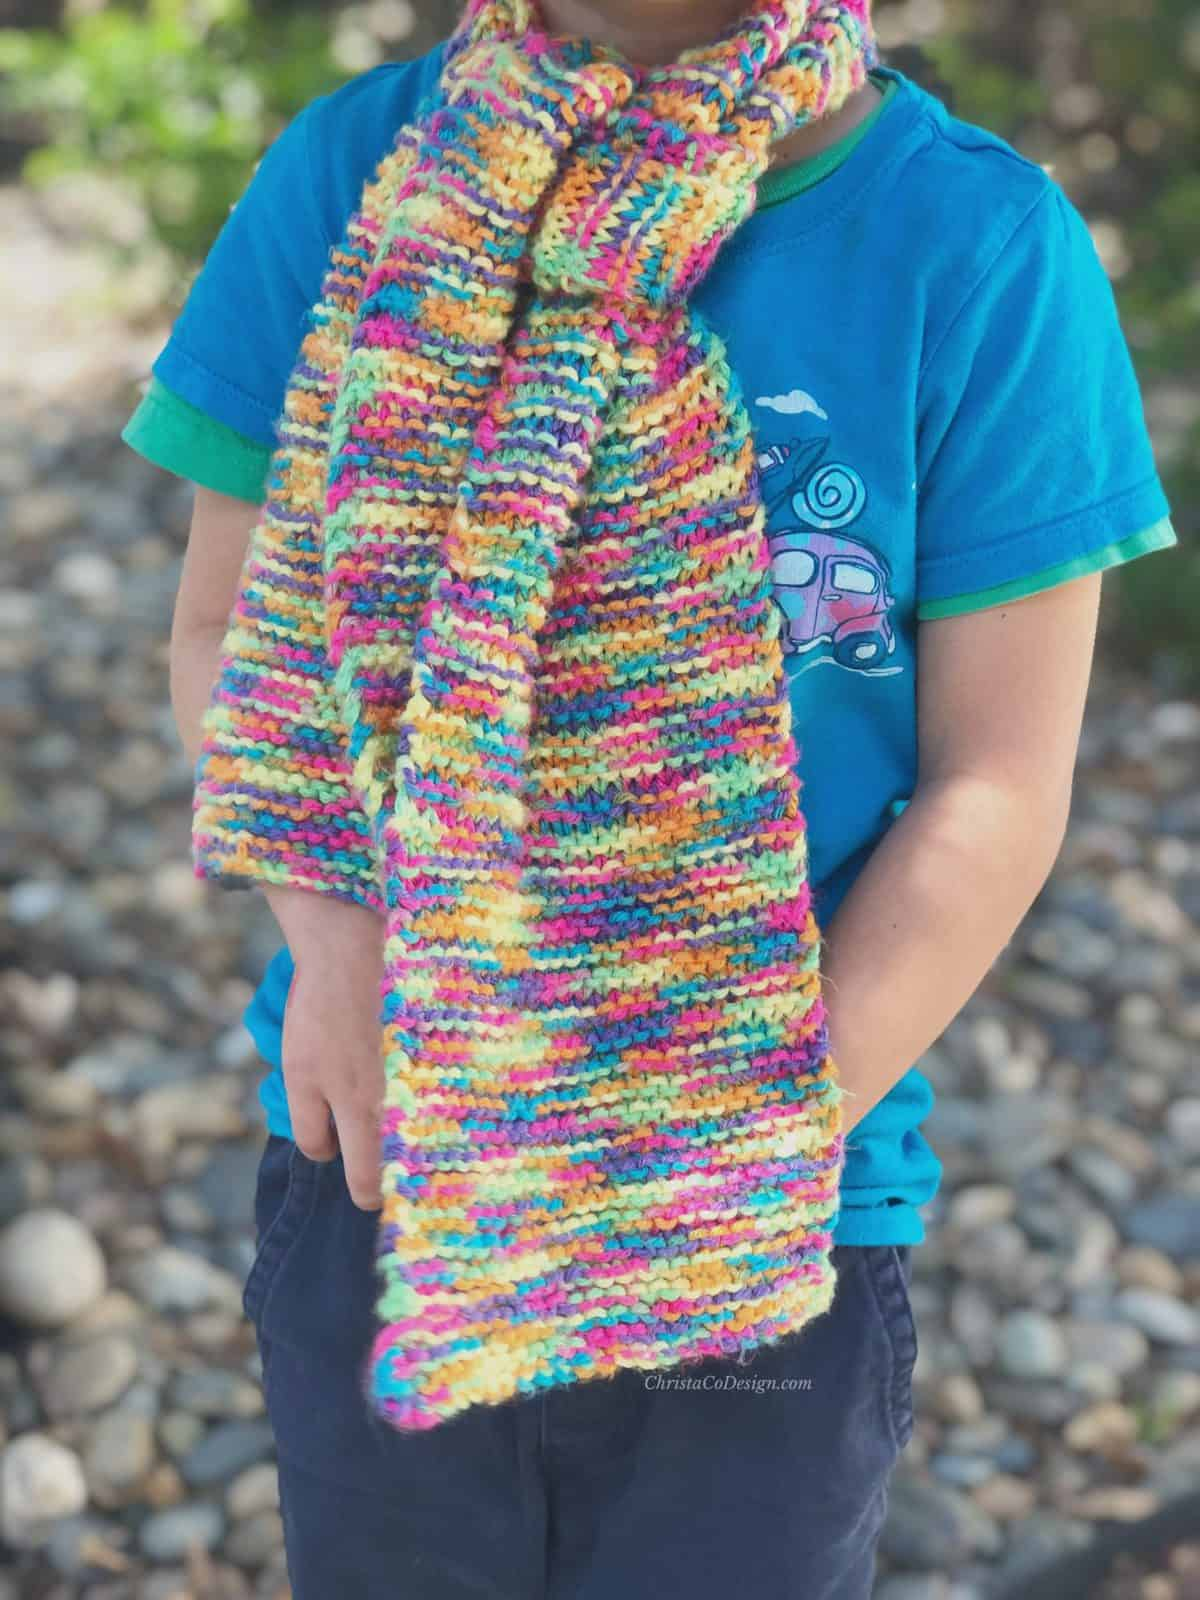 picture of scarf knit colorful and modeled on boy